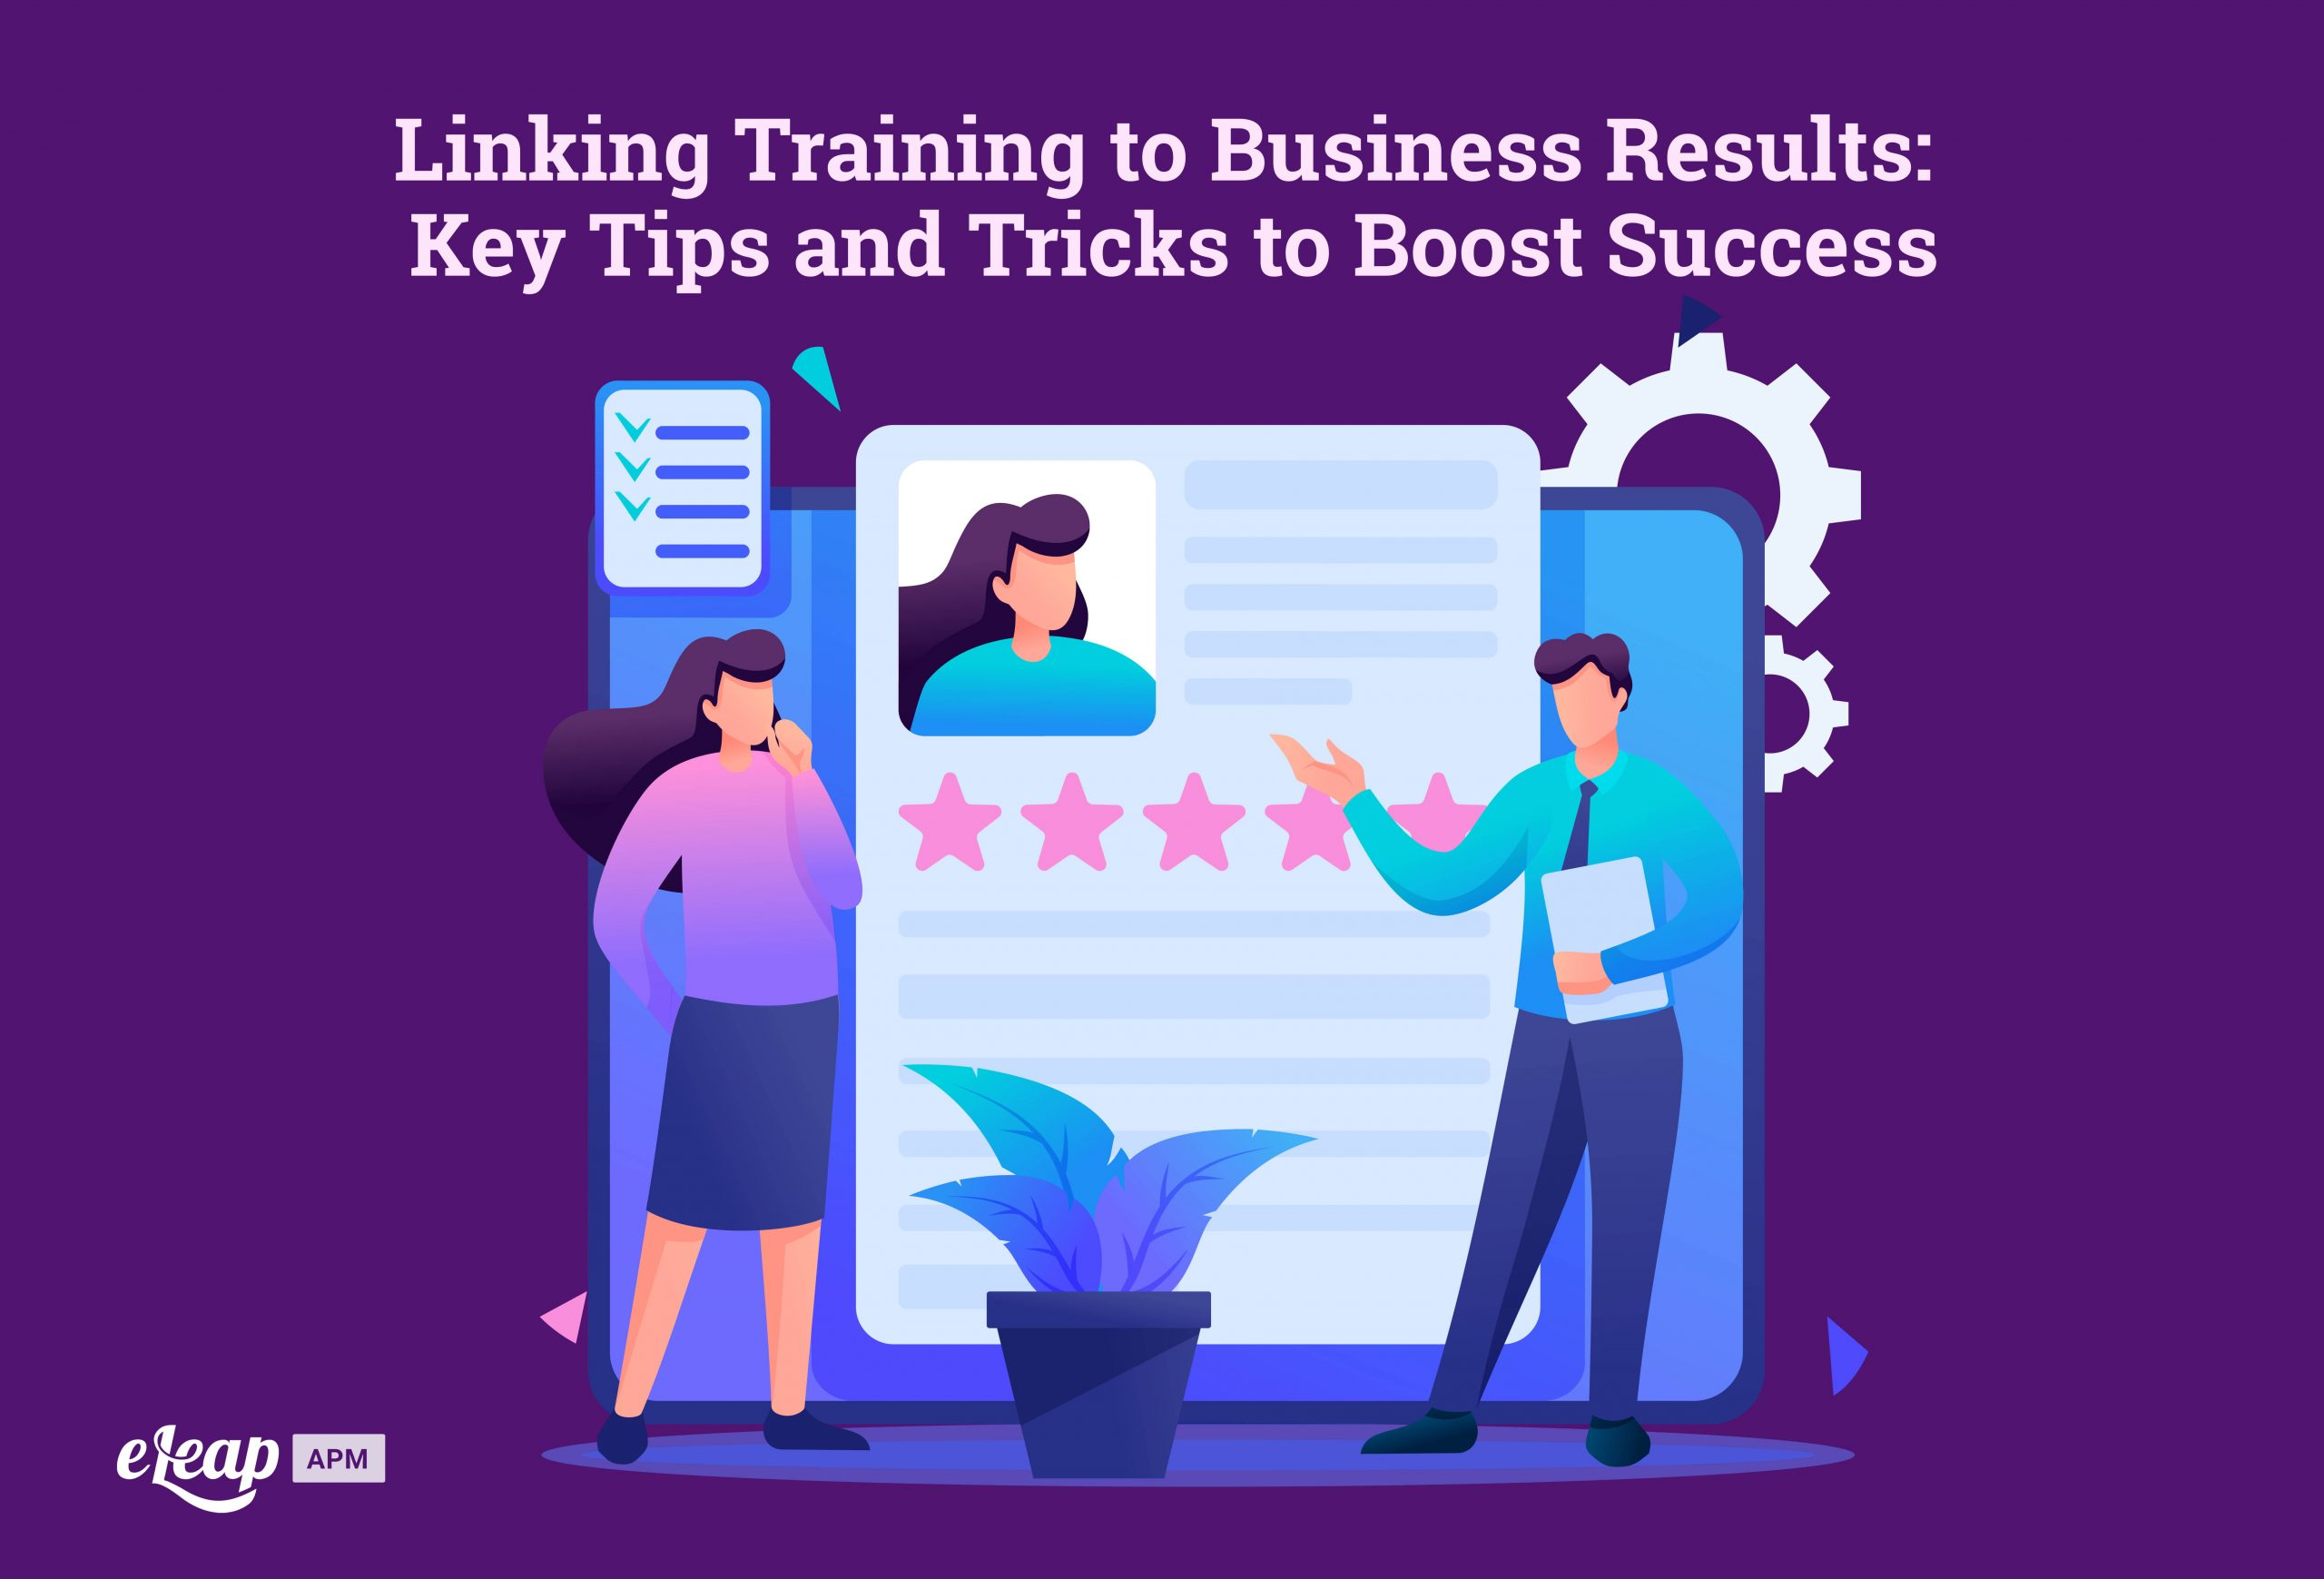 Linking Training to Business Results: Key Tips and Tricks to Boost Success